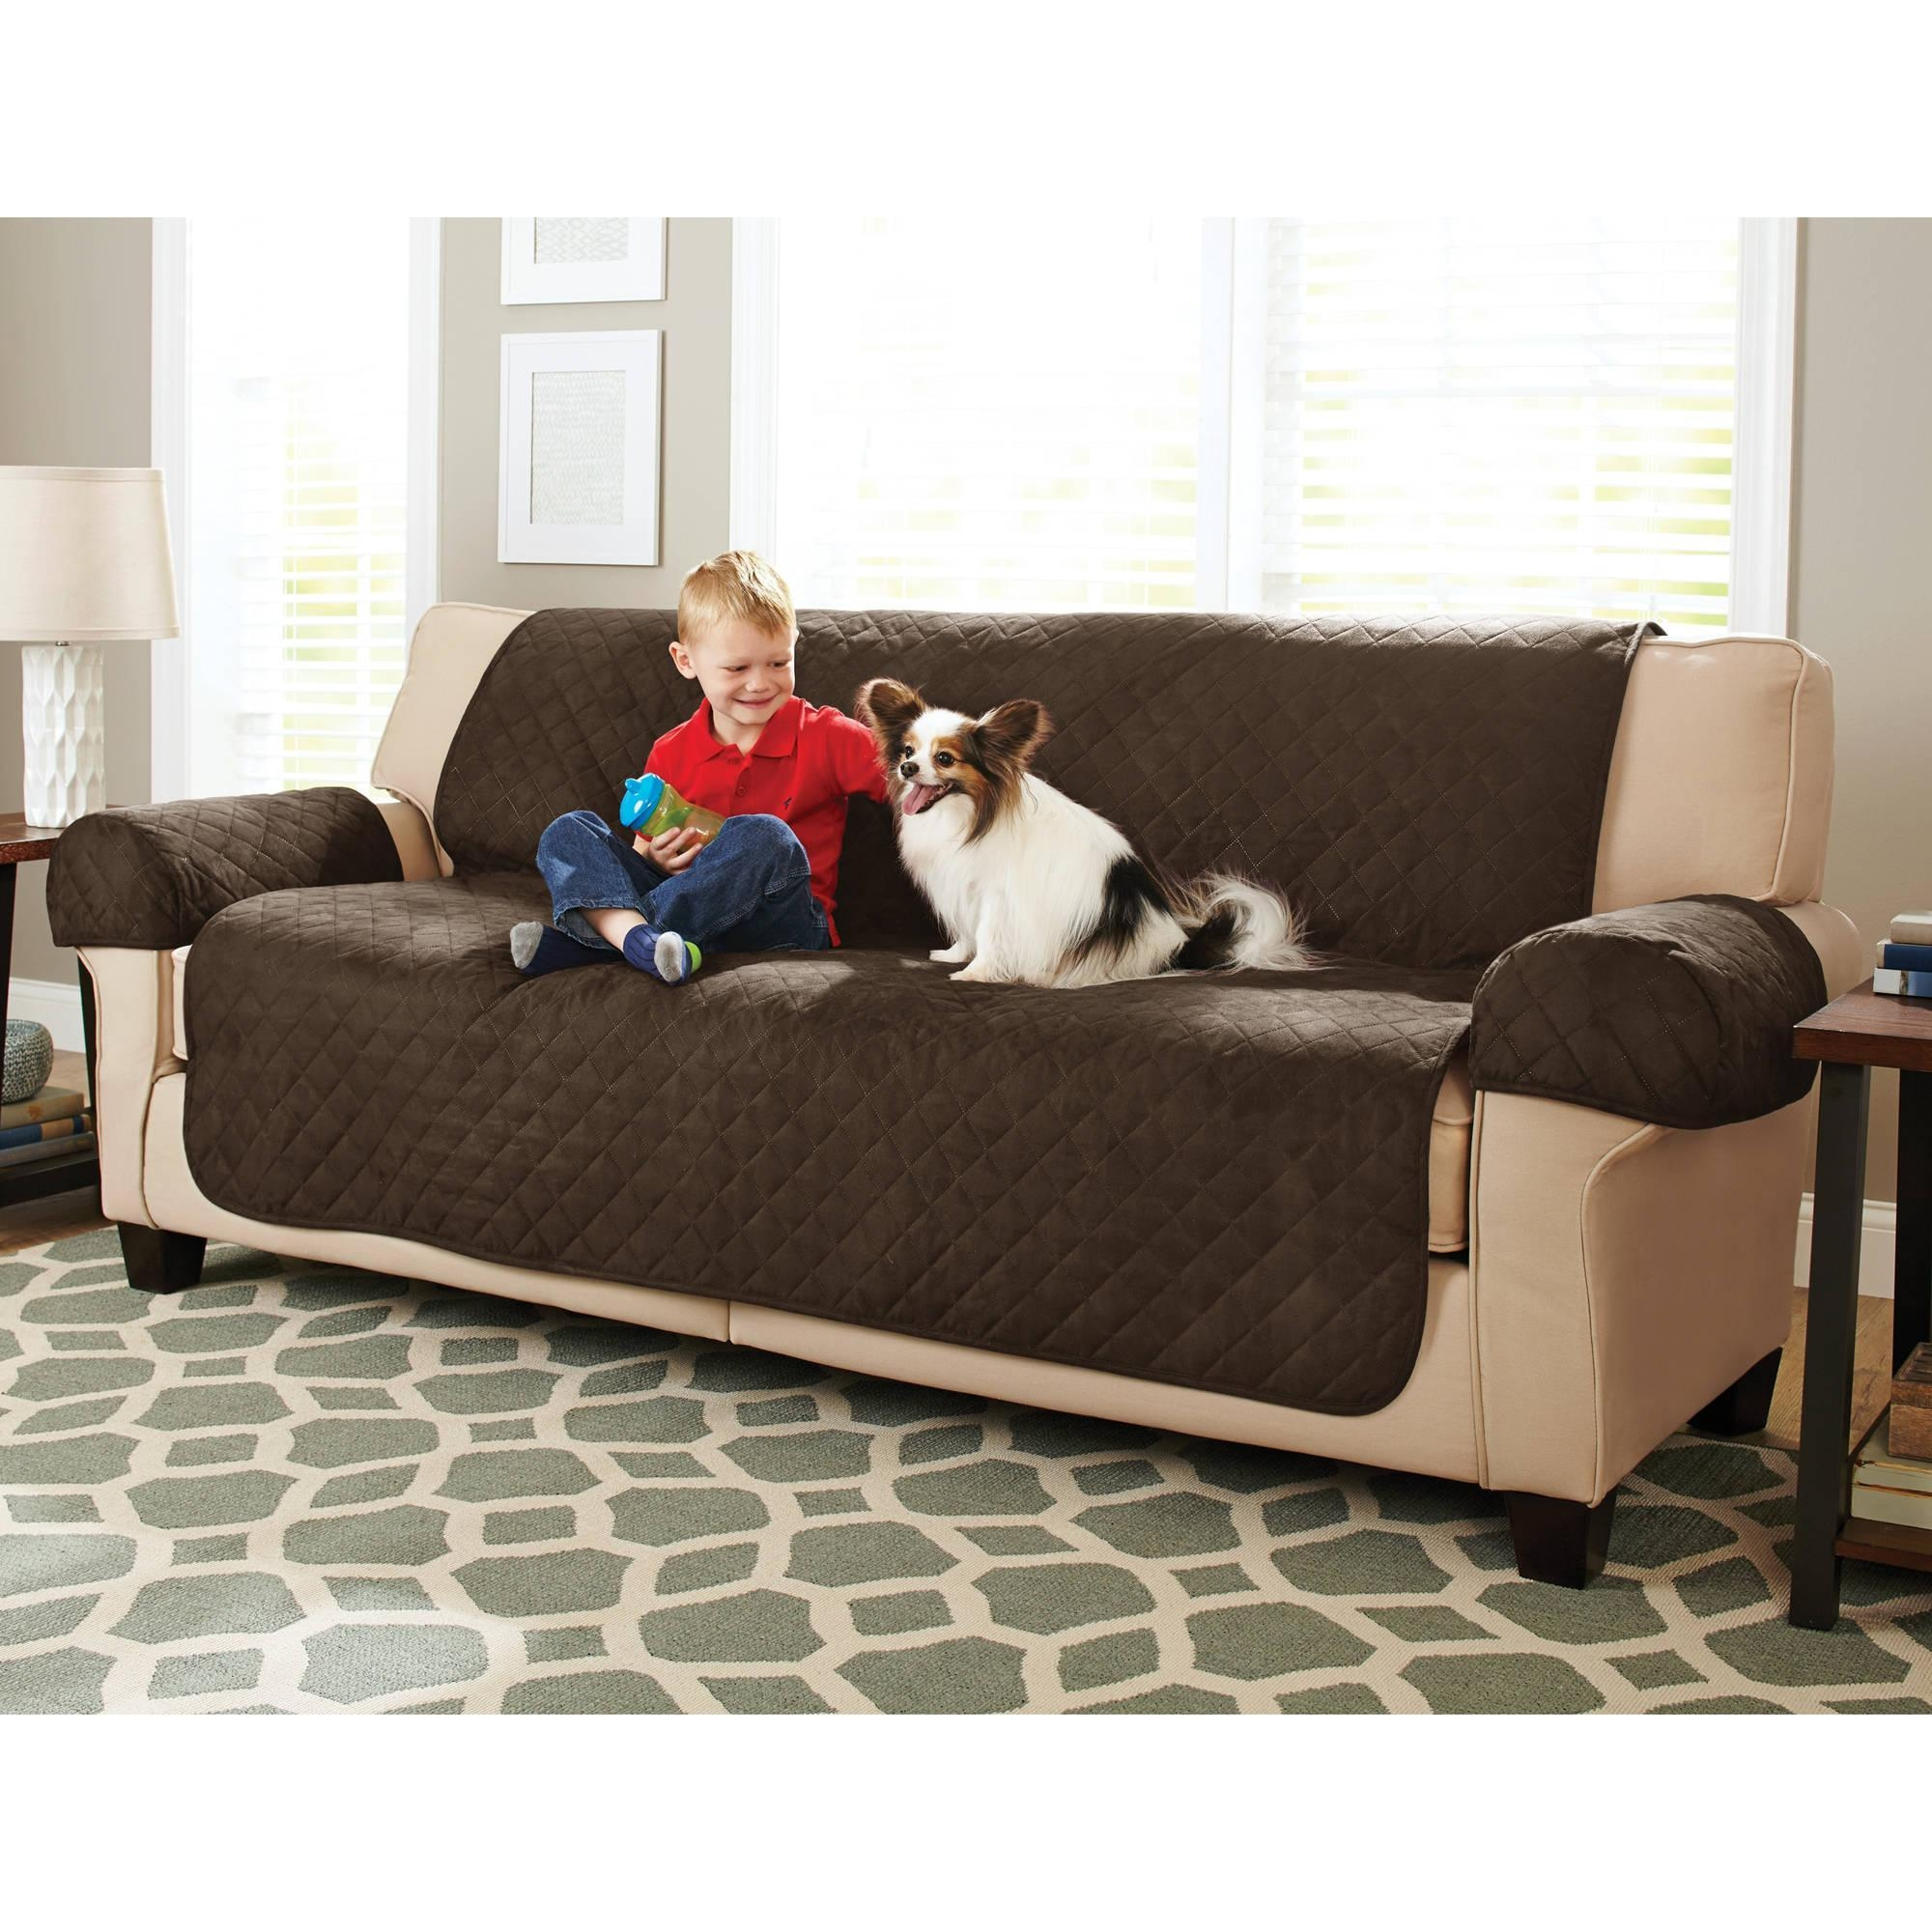 Cat Proof Furniture For Joy Cats | Home Decor & Furniture With Cat Tunnel Couches (Image 2 of 20)